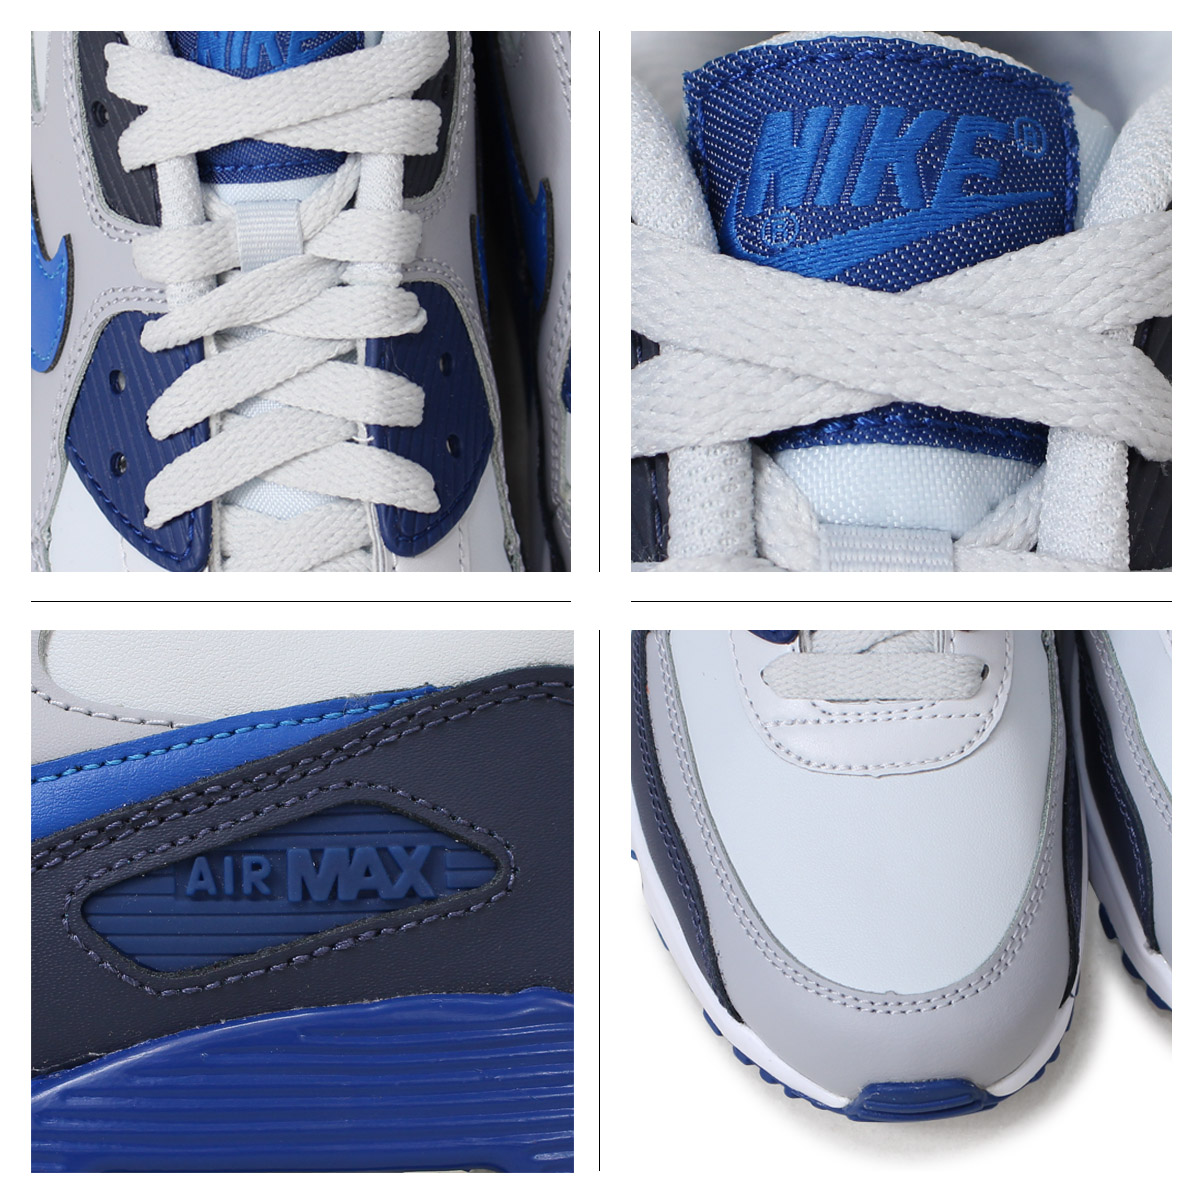 Nike NIKE Air Max 90 Lady's sneakers AIR MAX 90 LEATHER GS 833,412 407 blue